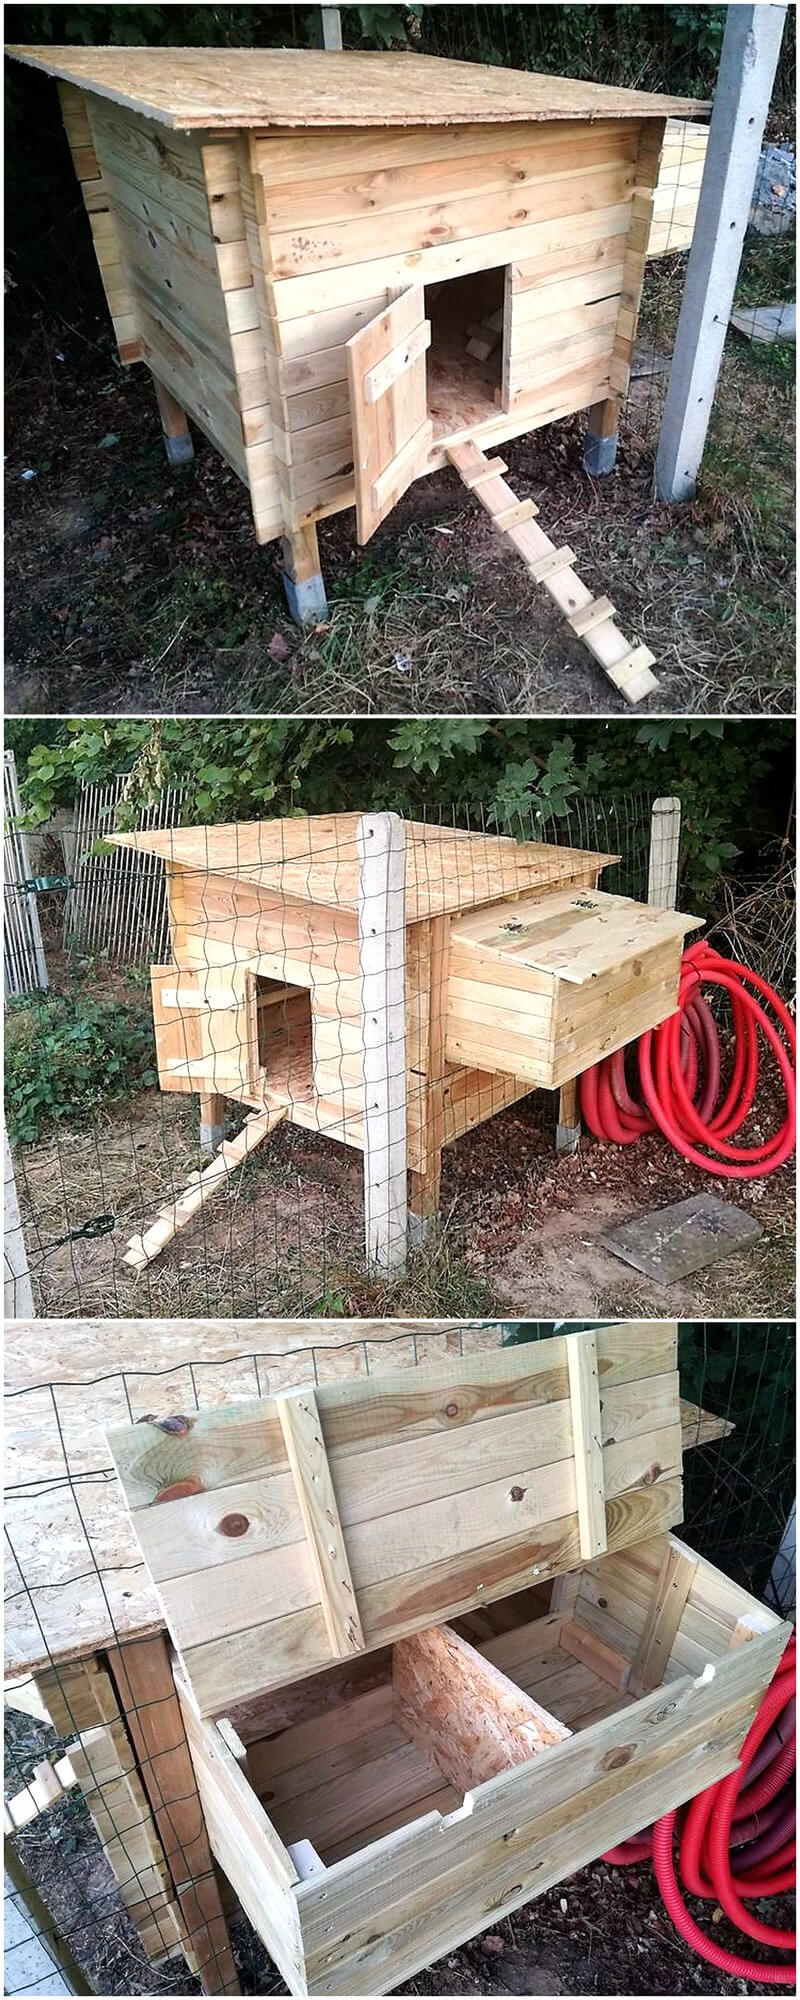 Incredible wood pallet ideas and projects pallet ideas for Wood pallet chicken coop